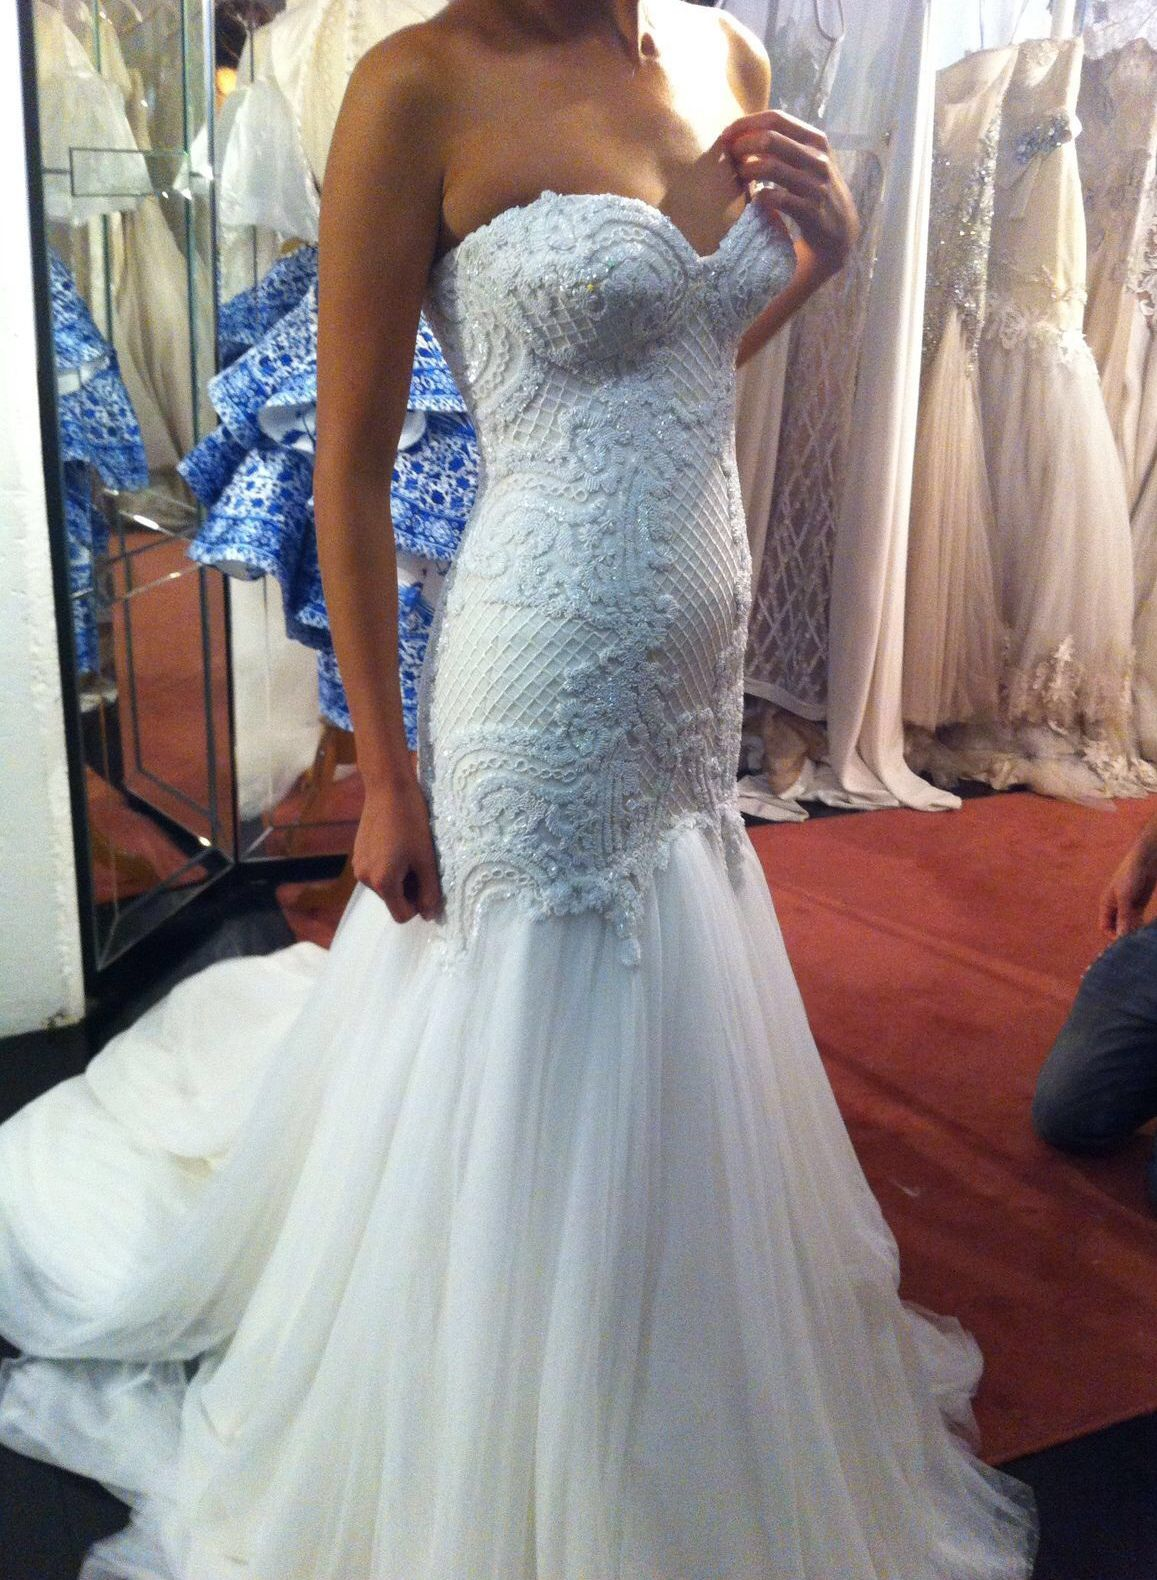 Craig Braybrook Wedding Dress | T H E | D R E S S | | Pinterest ...